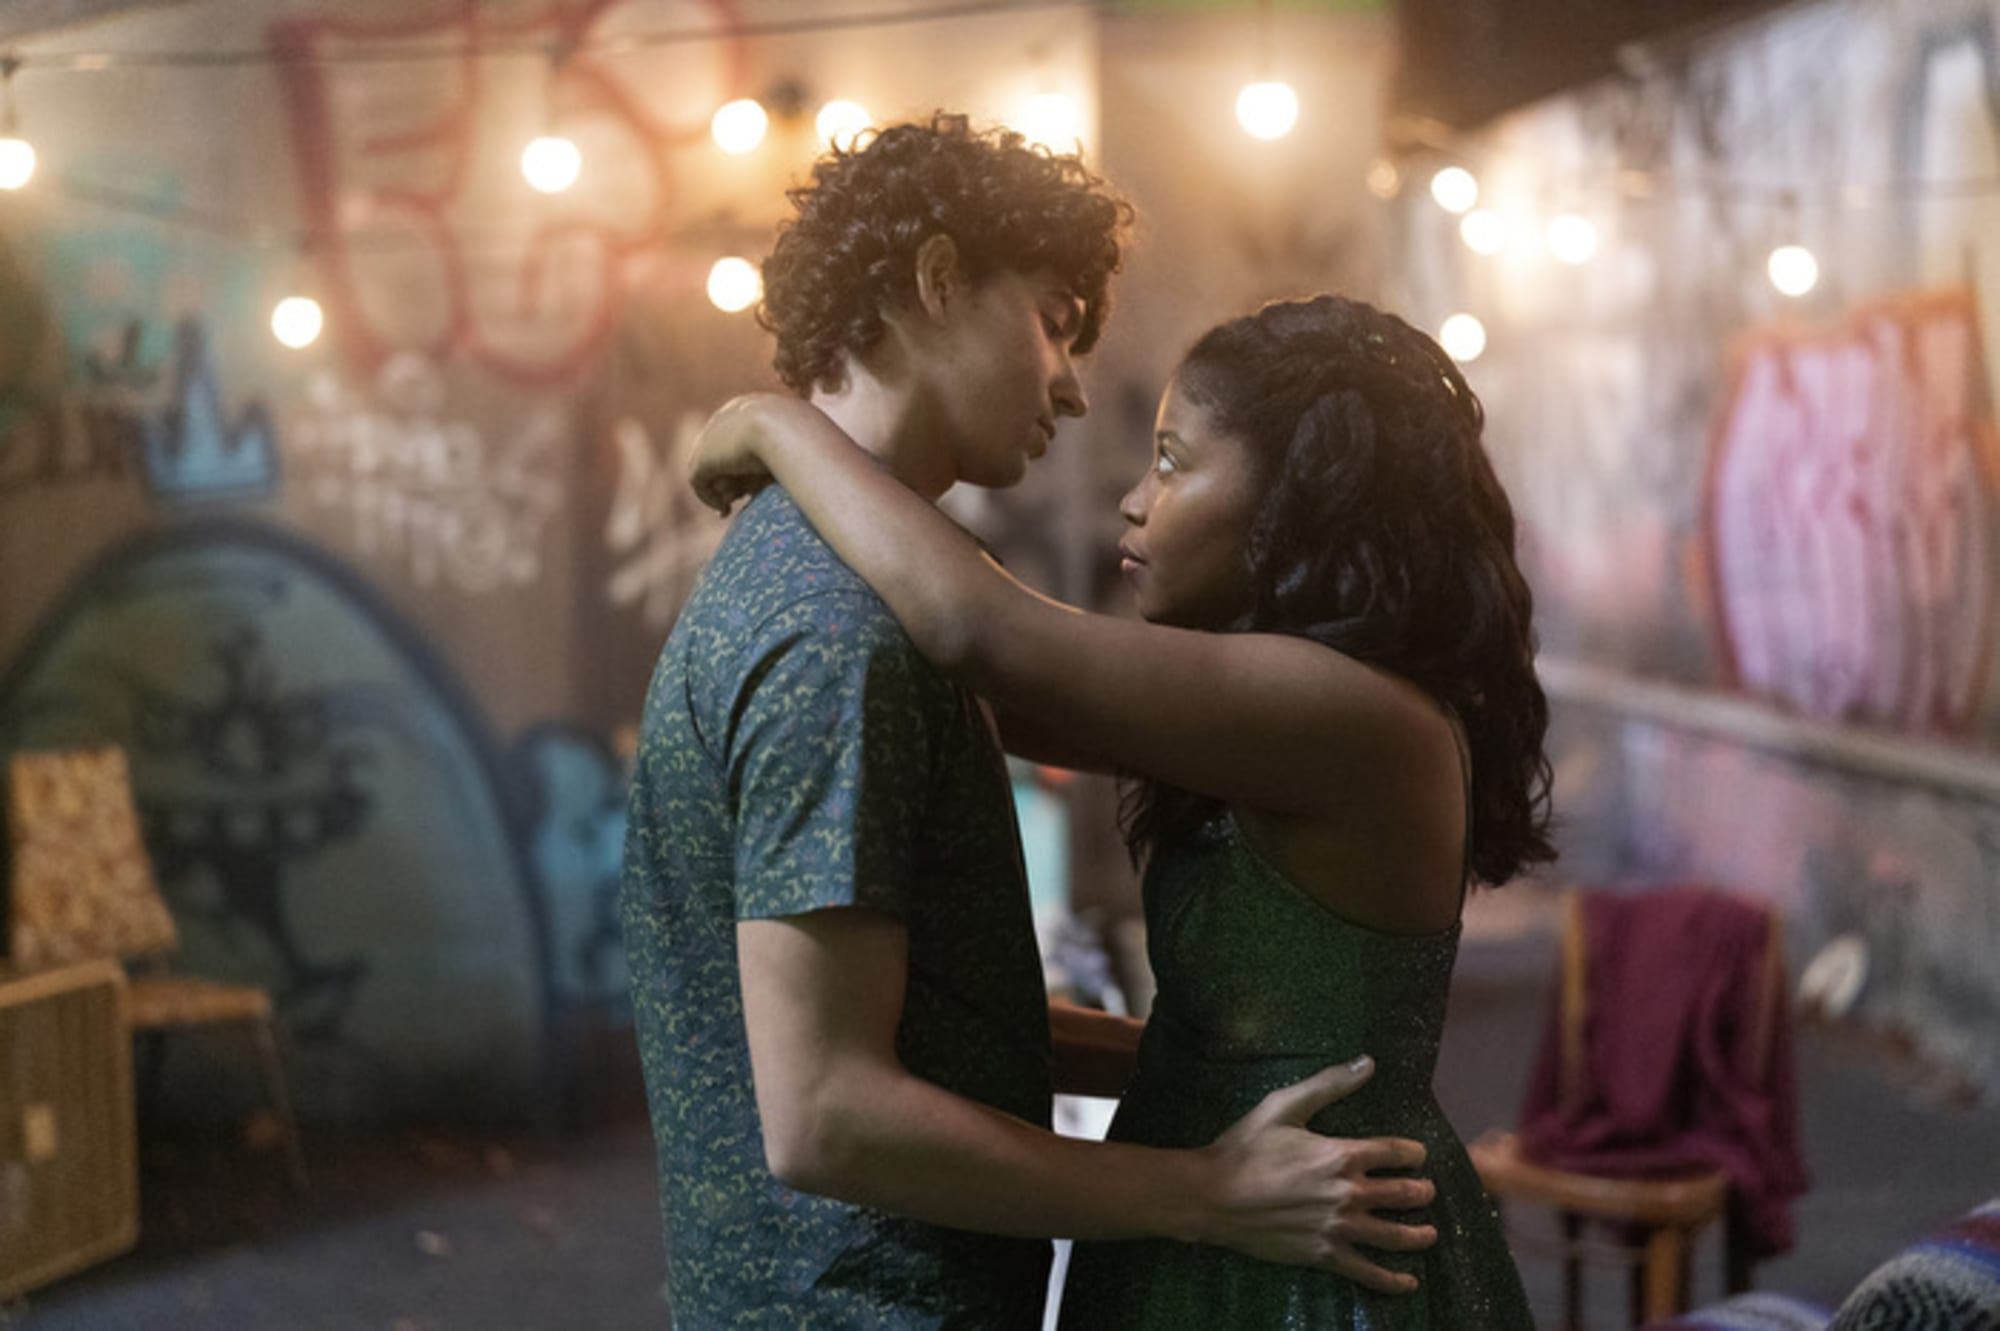 Modern Love Season 2, Episode 4 recap: Getting out of the friend zone